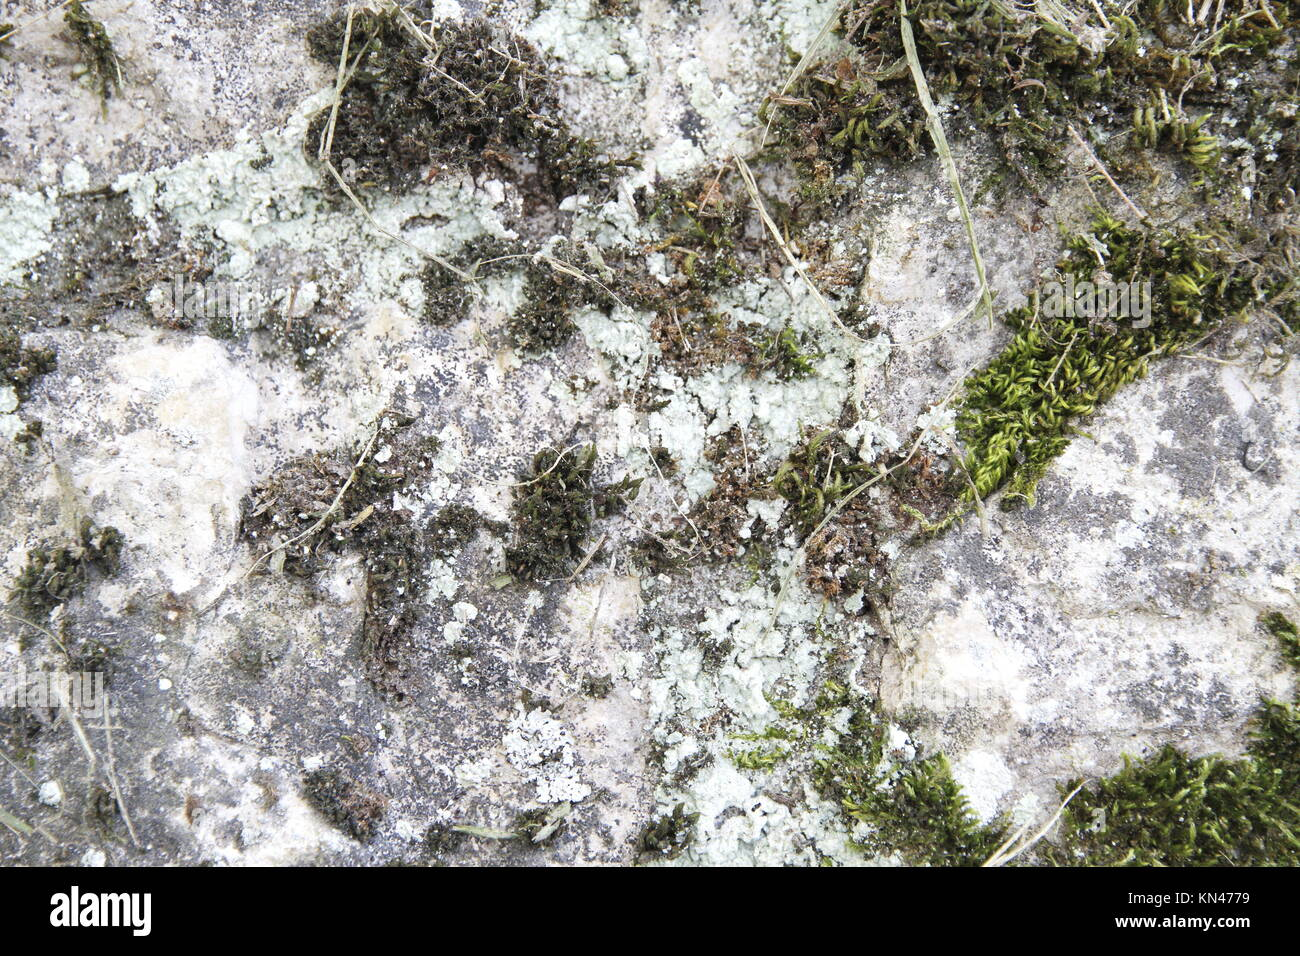 Plants breaking through a rotten and humid stone wall. - Stock Image